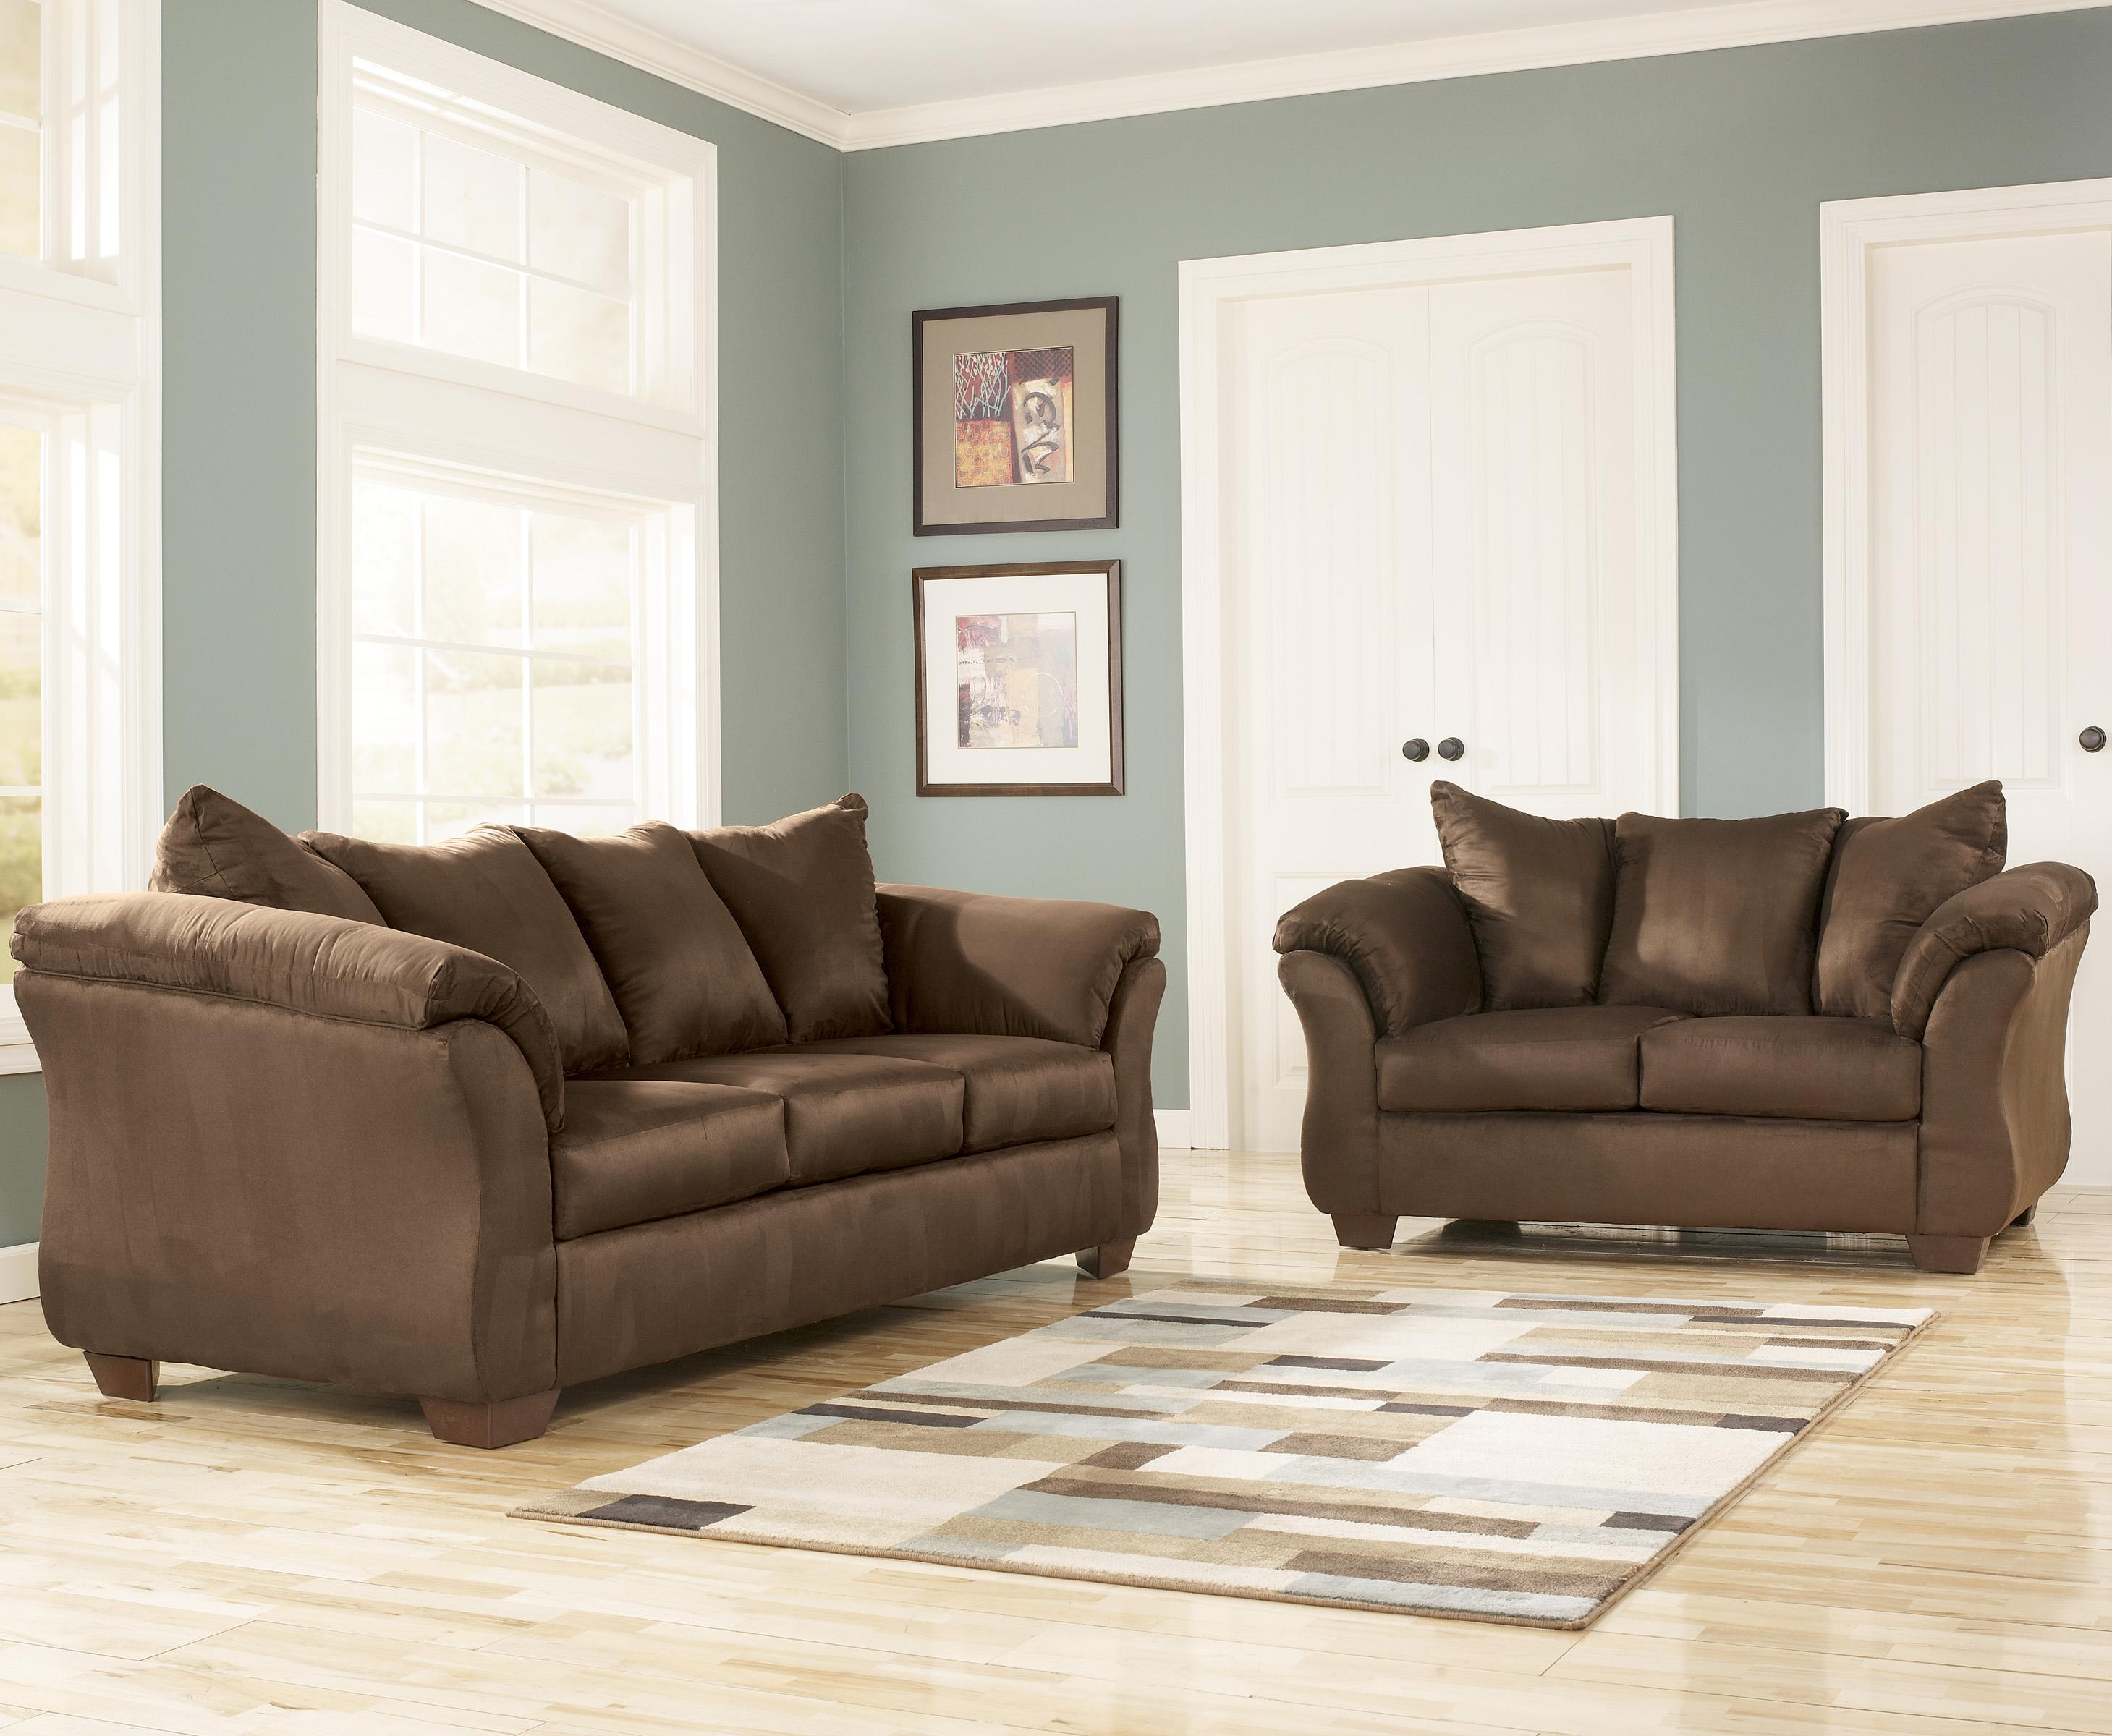 afhs navasota homestore couches p furniture at ashley crop sofa zoomed pdp images